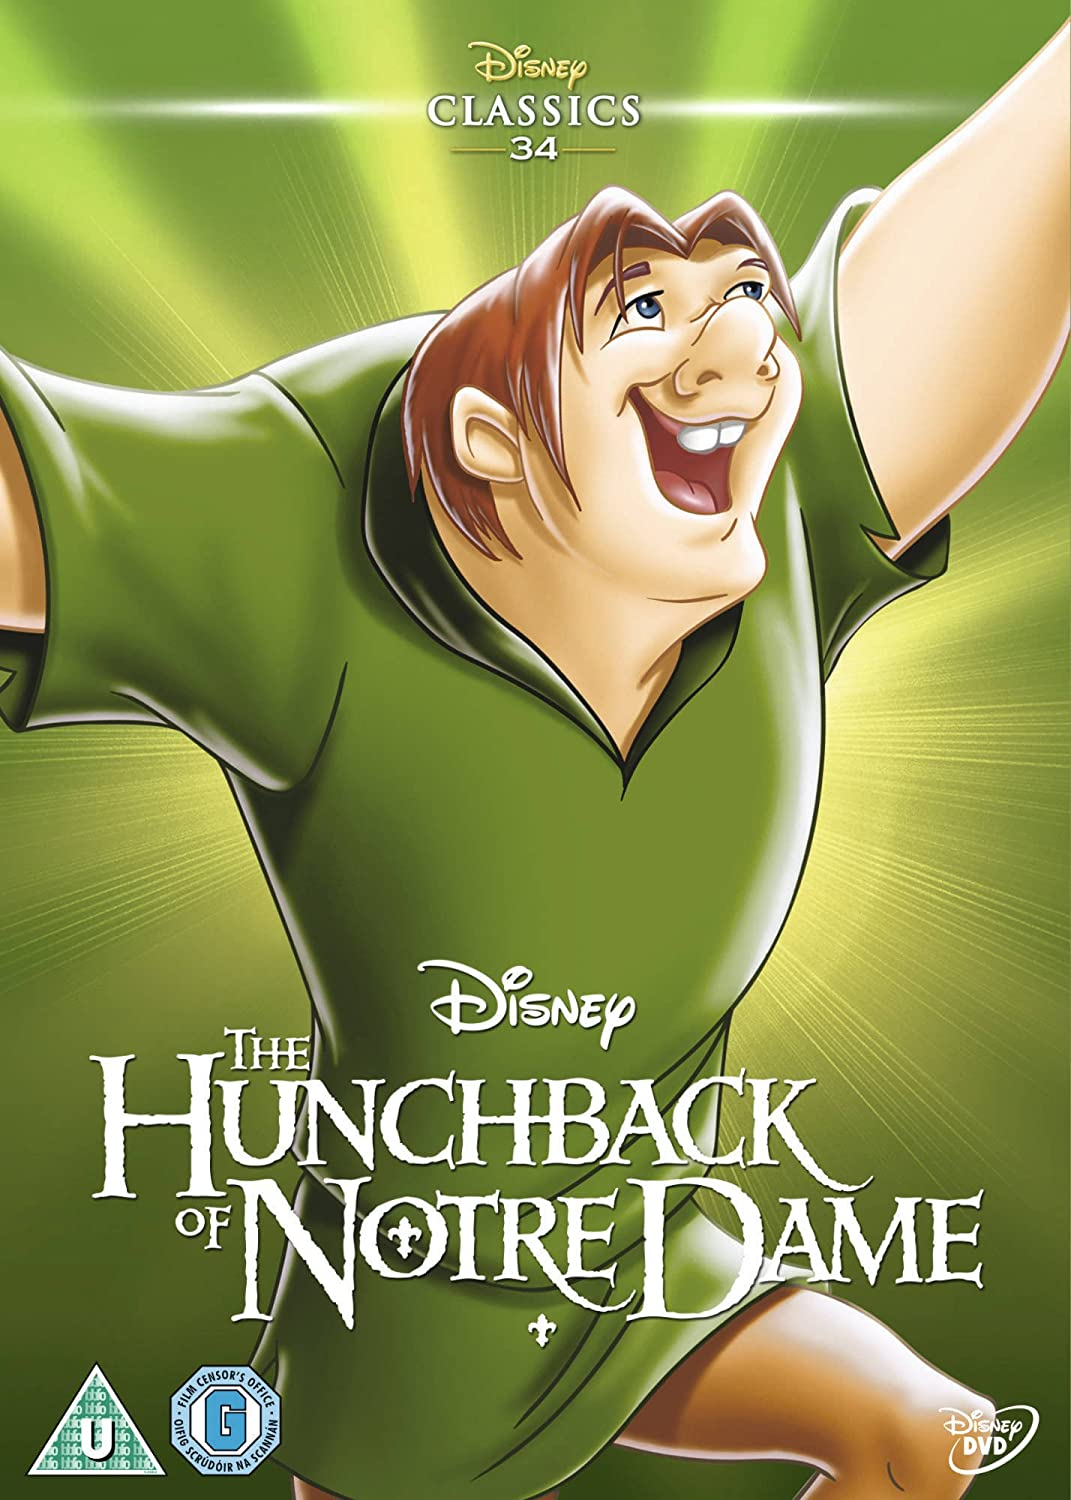 Amazon Com The Hunchback Of Notre Dame 1996 Limited Edition Artwork Sleeve Dvd Movies Tv